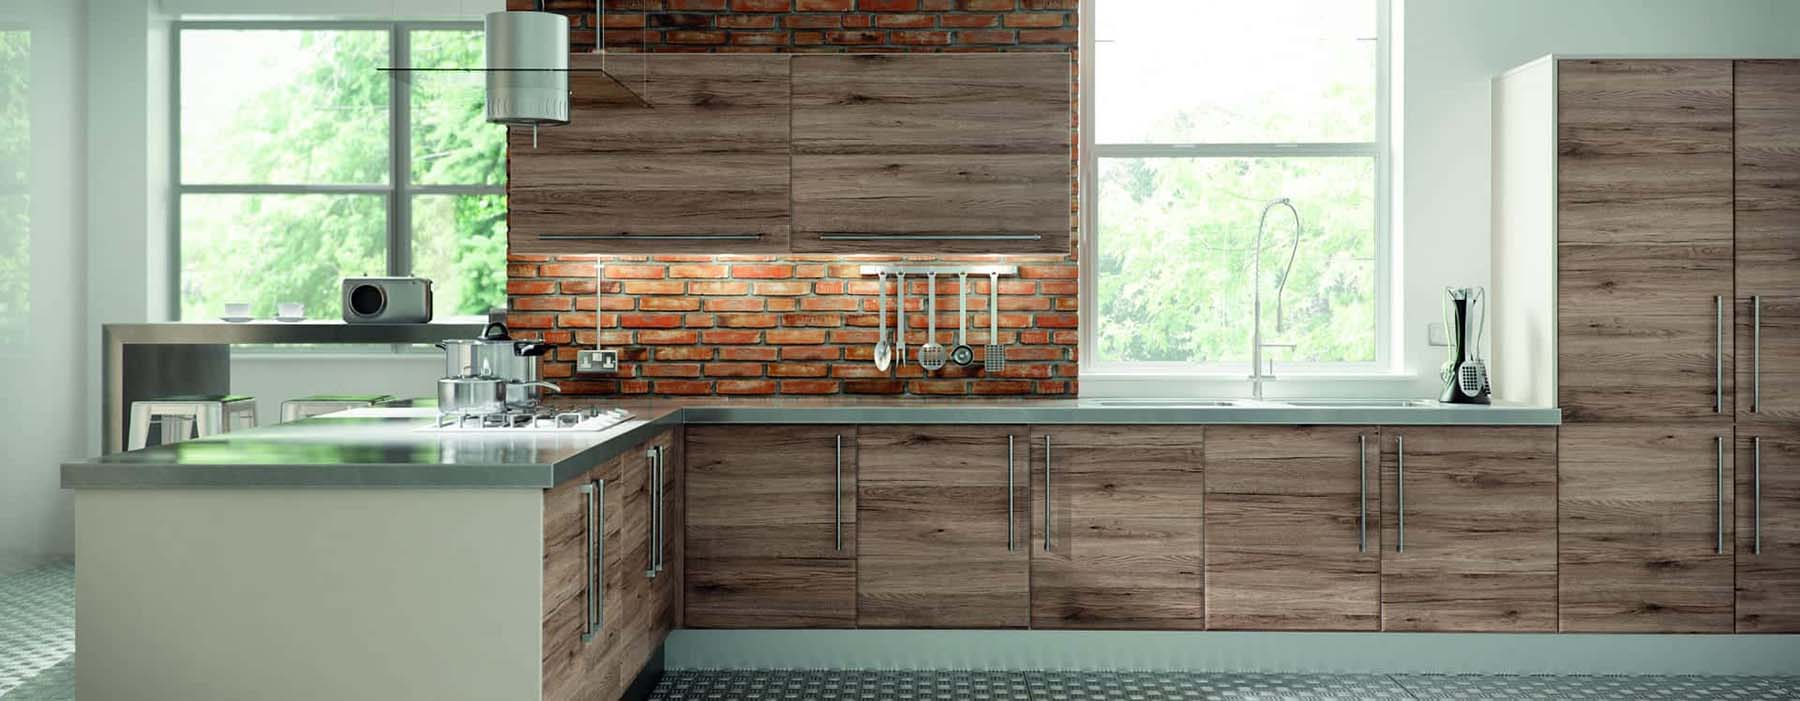 wood and brick facade backsplash